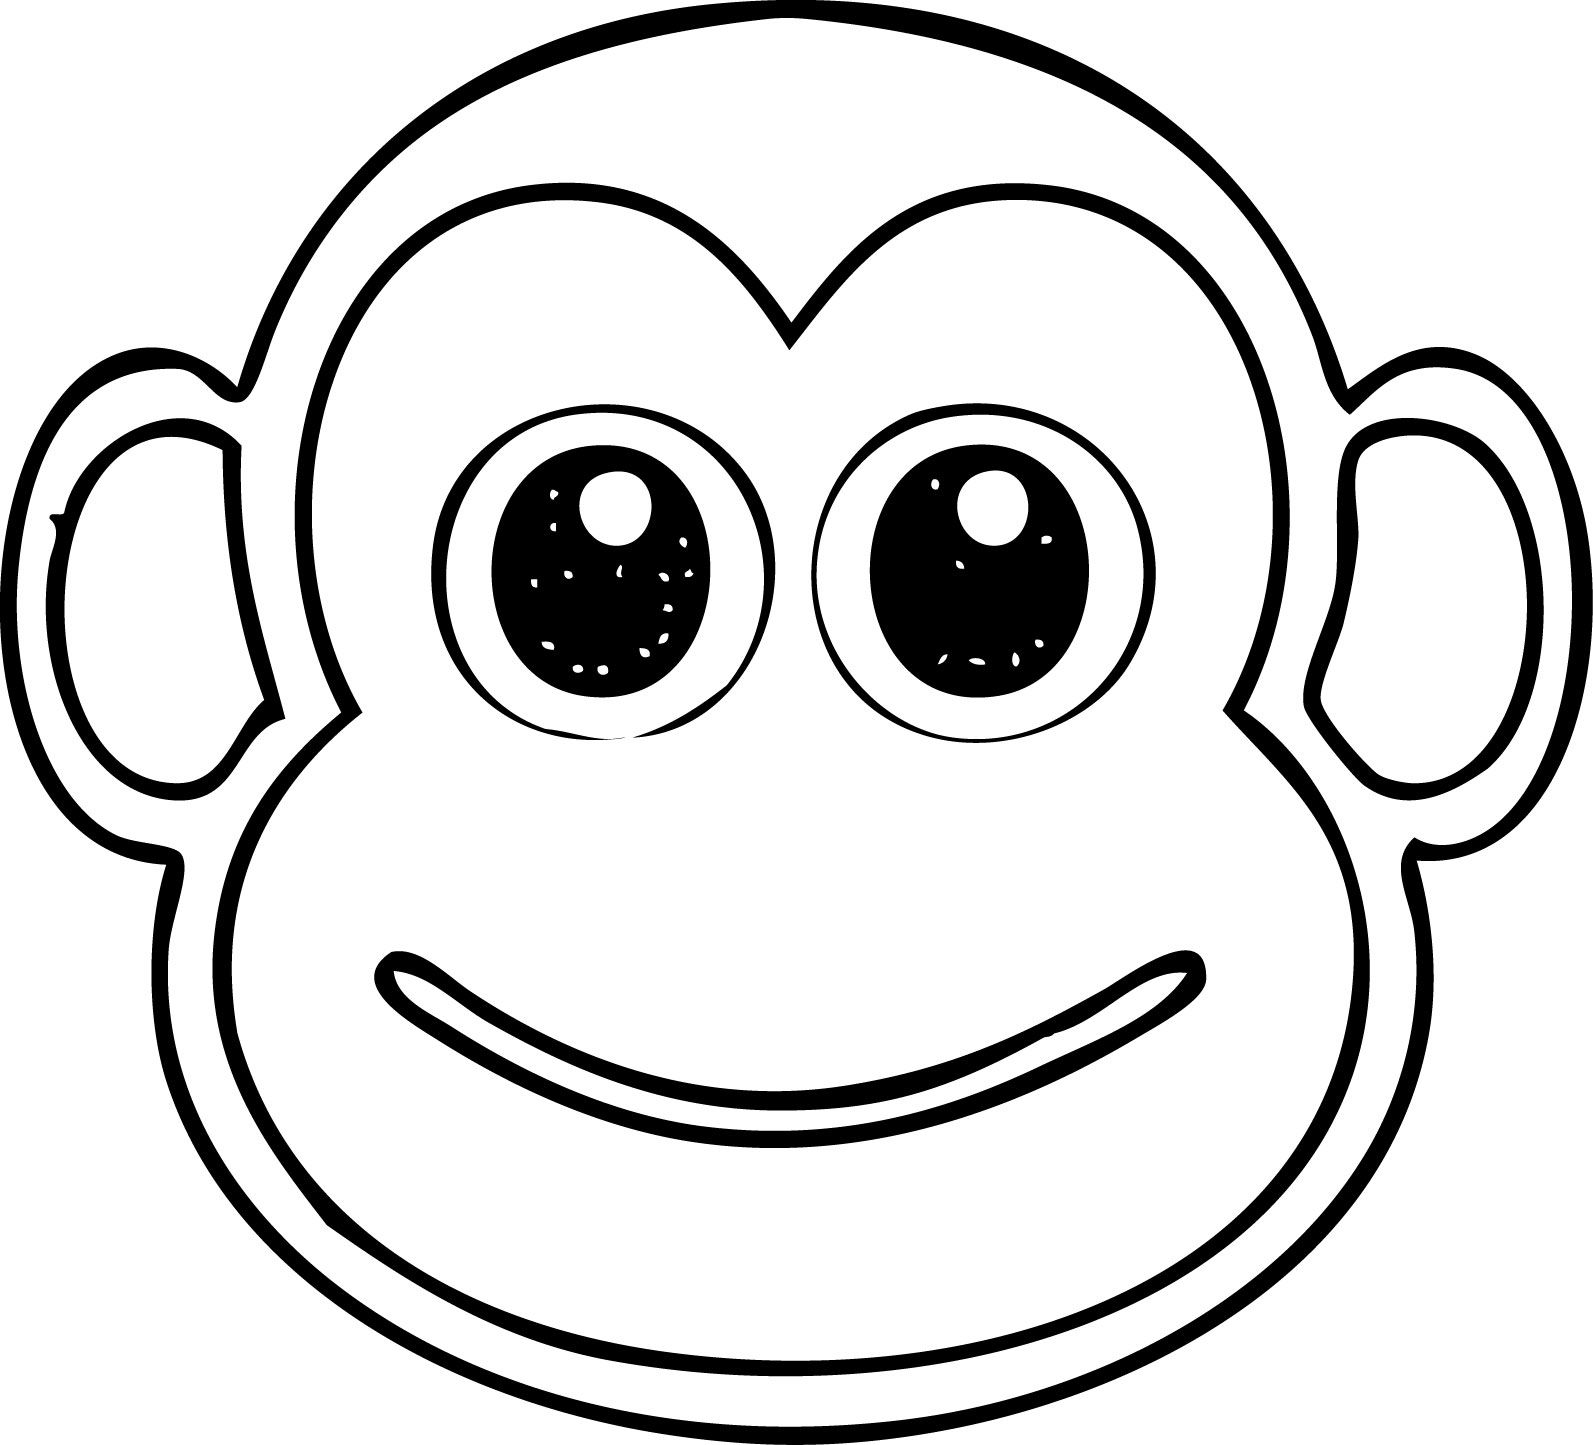 Cool Monkey Head Coloring Page Monkey Coloring Pages Cartoon Monkey Cartoon Coloring Pages